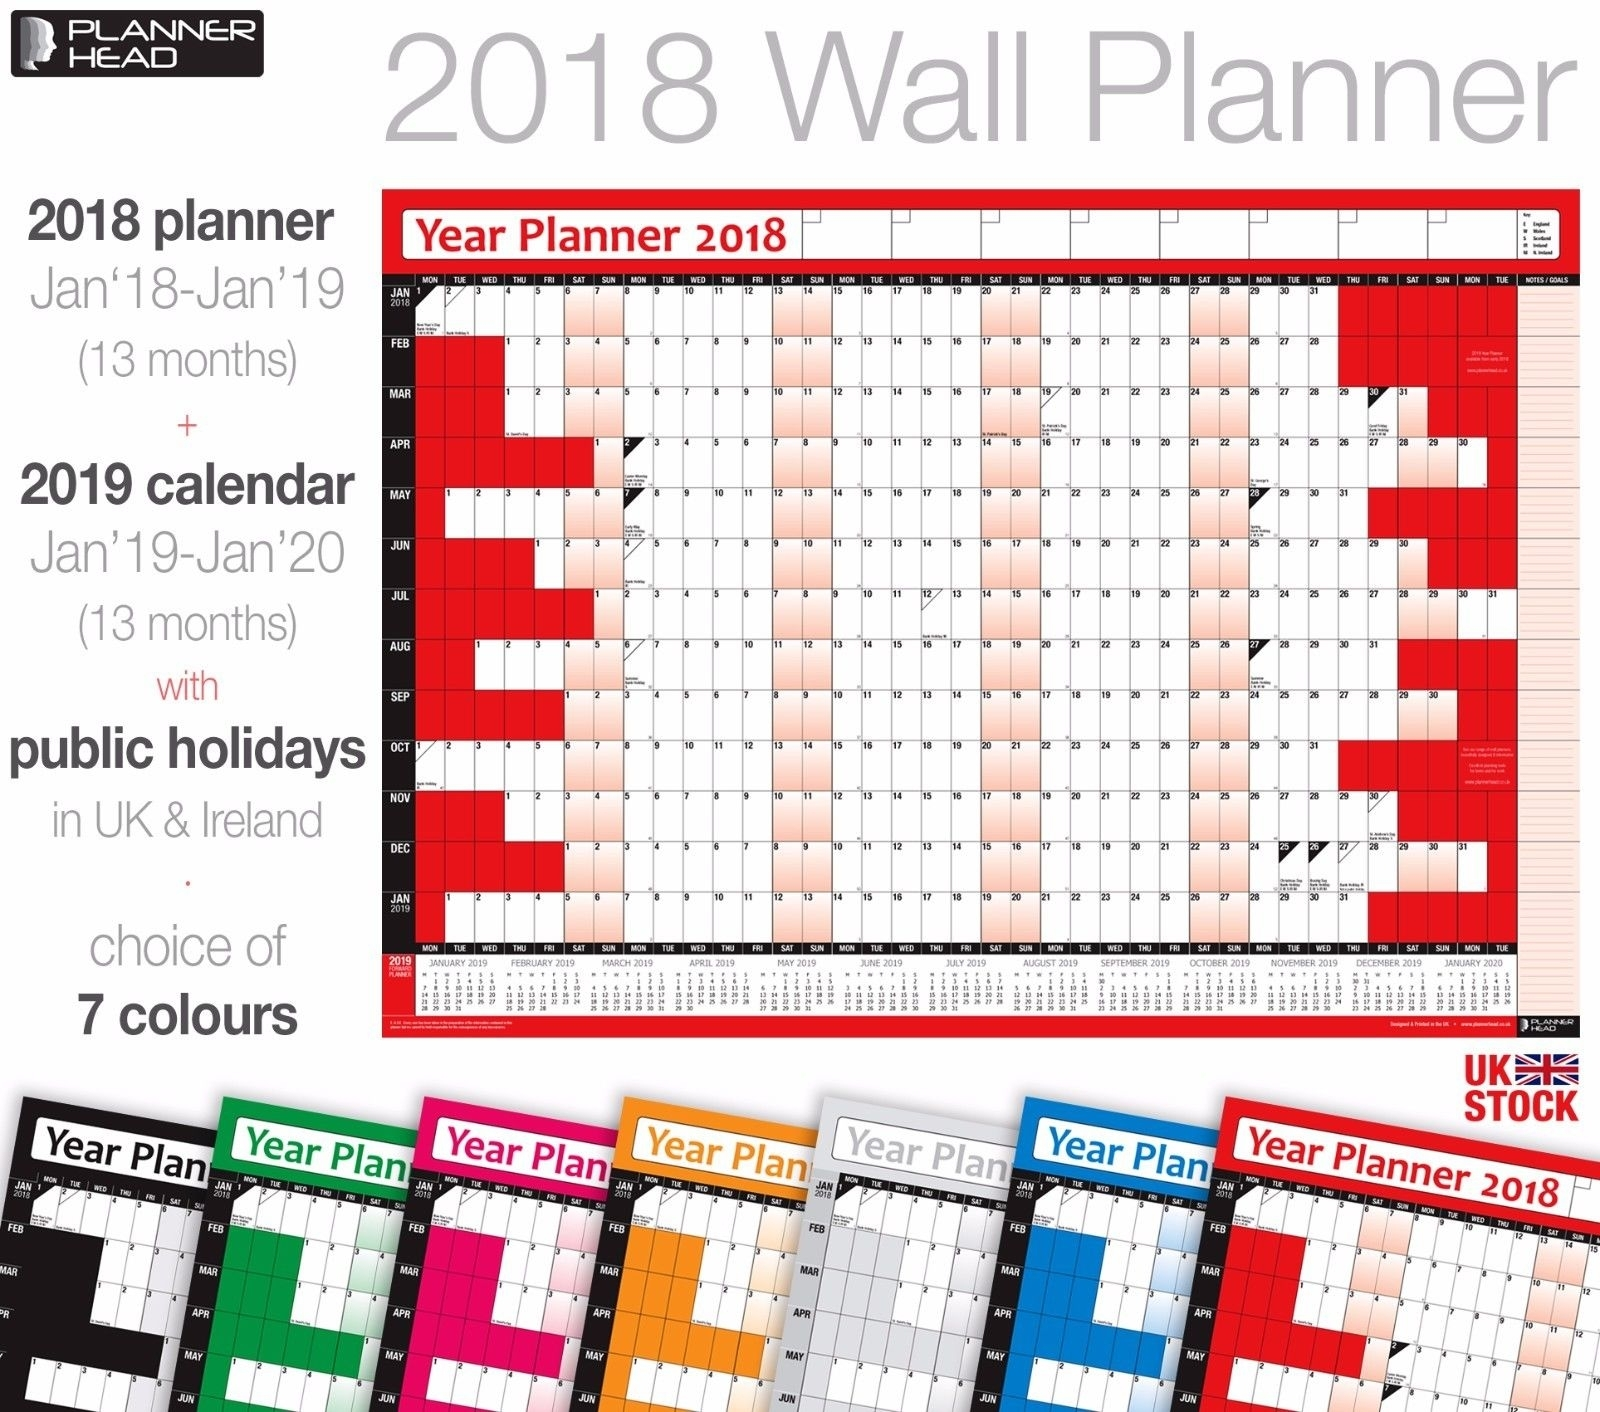 2018 Yearly Planner Calendar Wall Chart Planner With 2019 Calender ✔Home  ✔Office